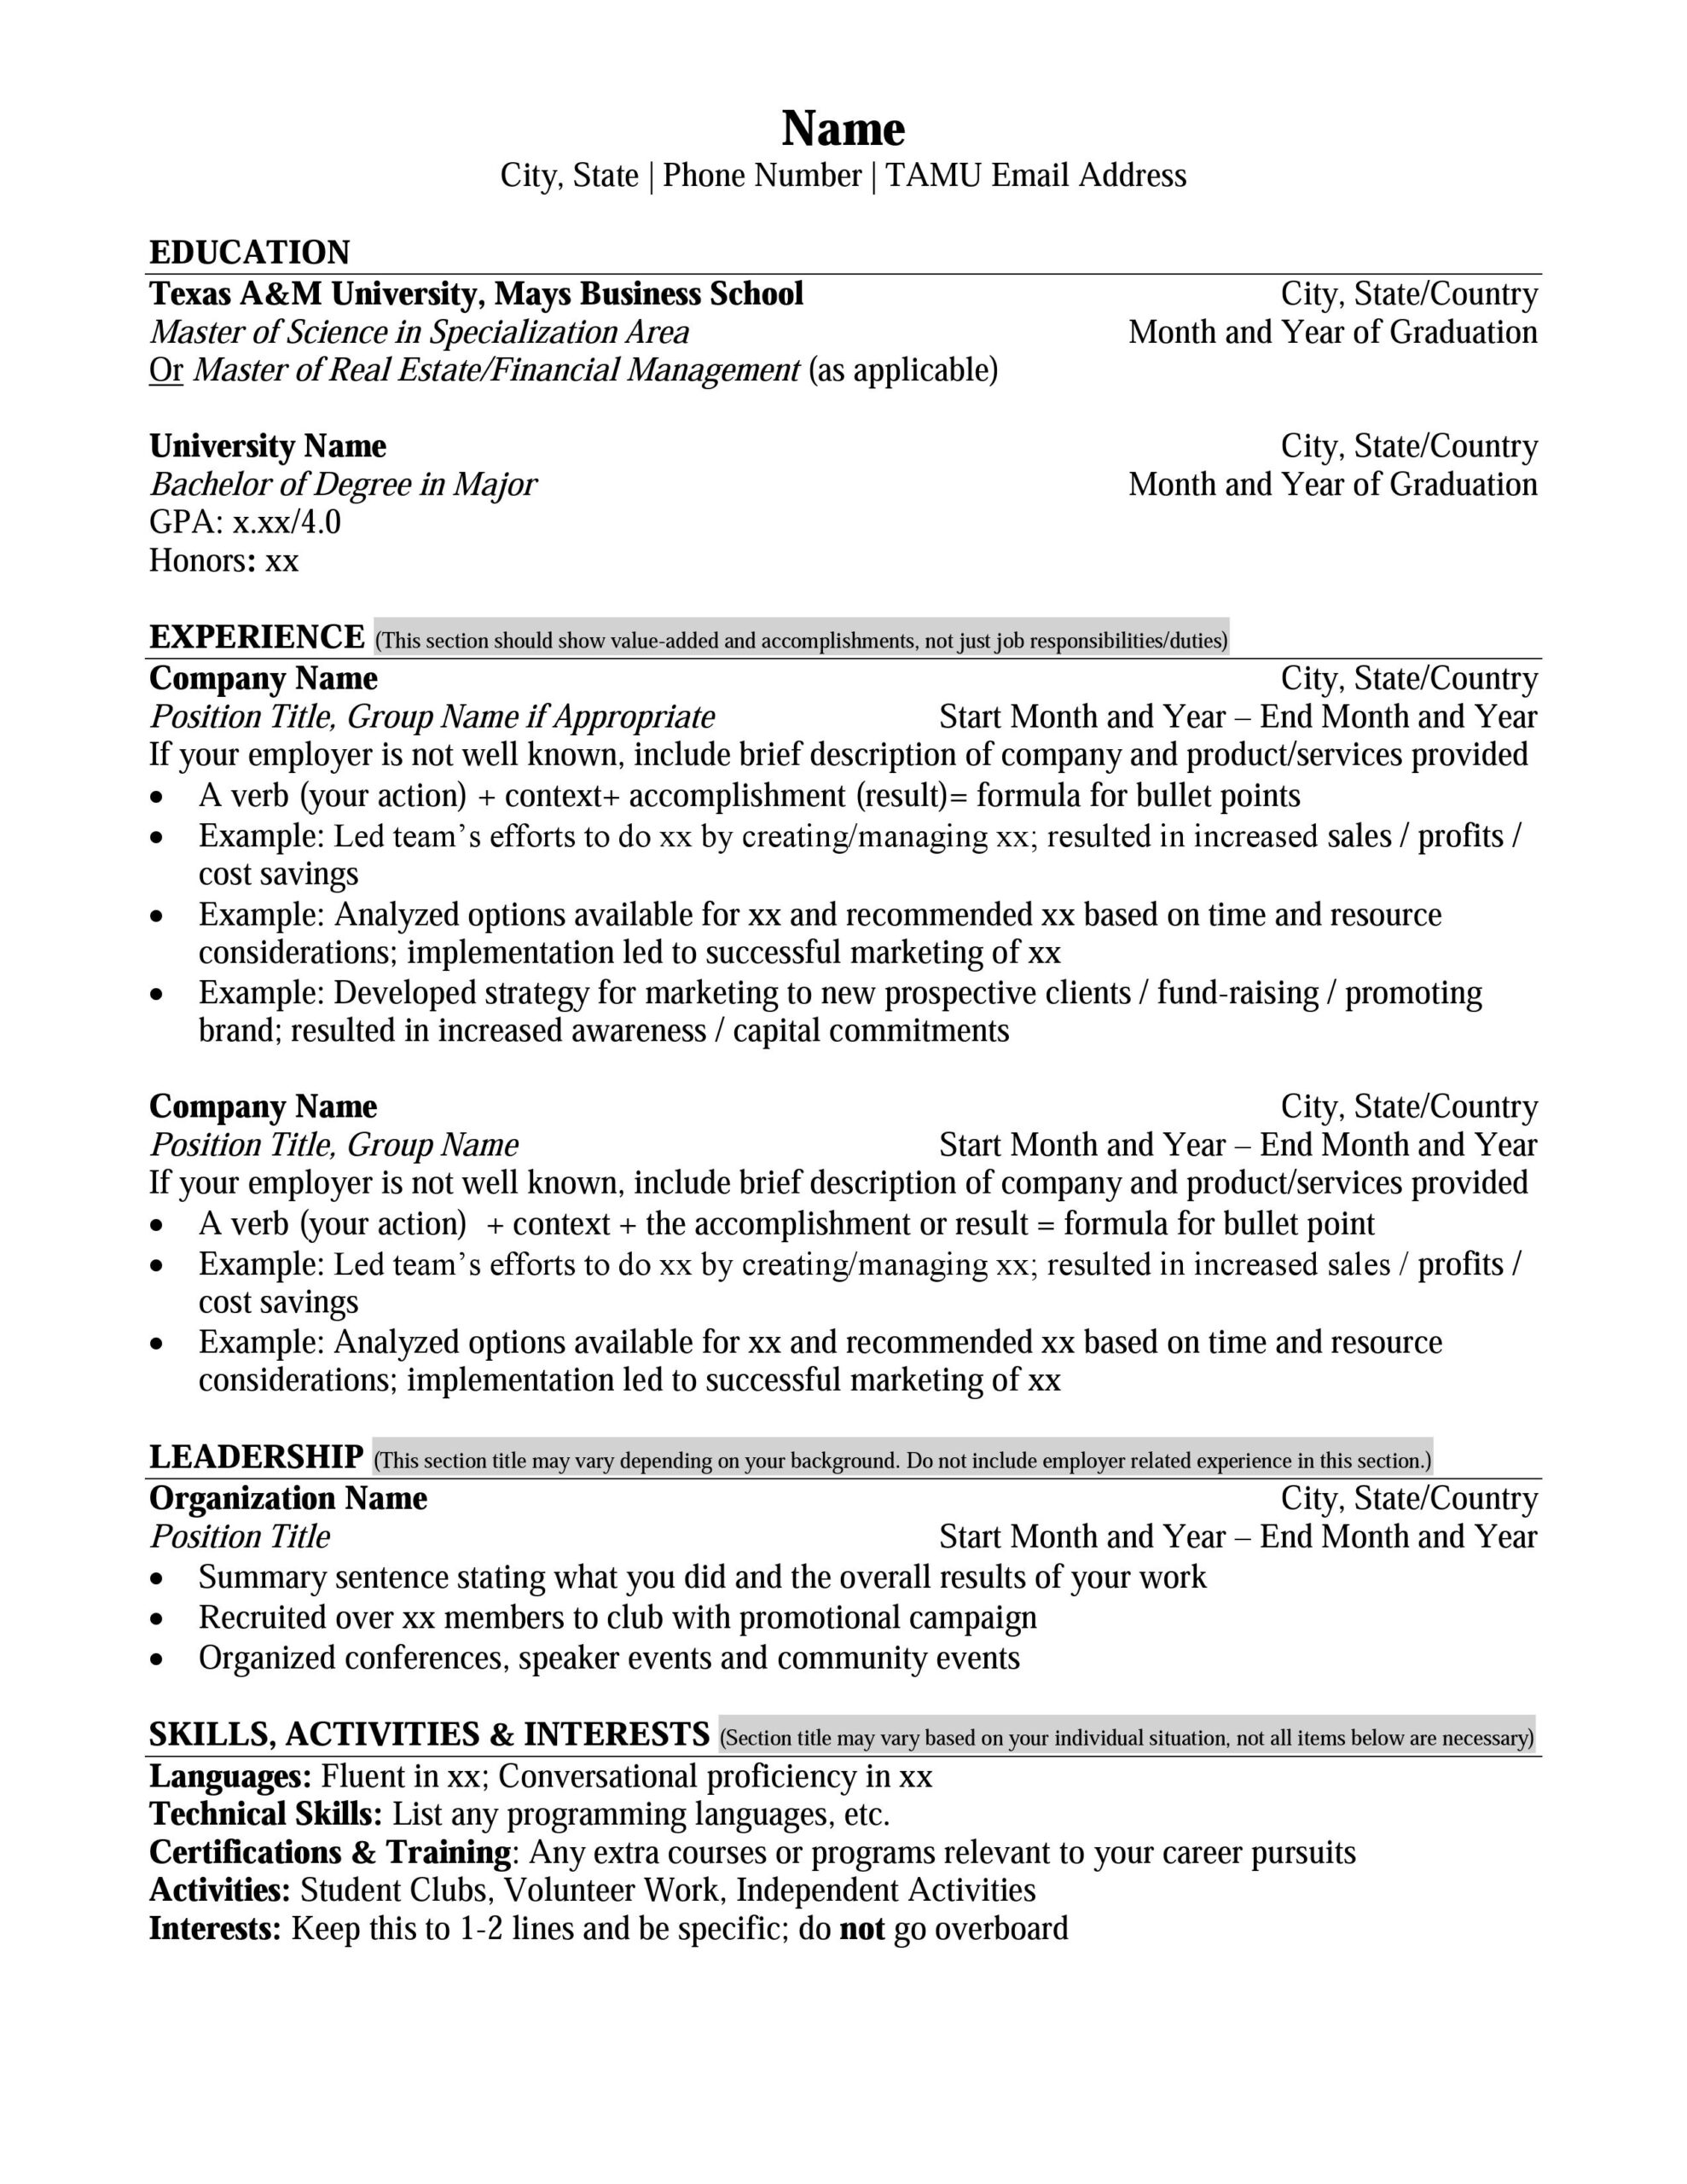 mays masters resume format career management center business school for degree sample ms Resume Resume For Masters Degree Sample